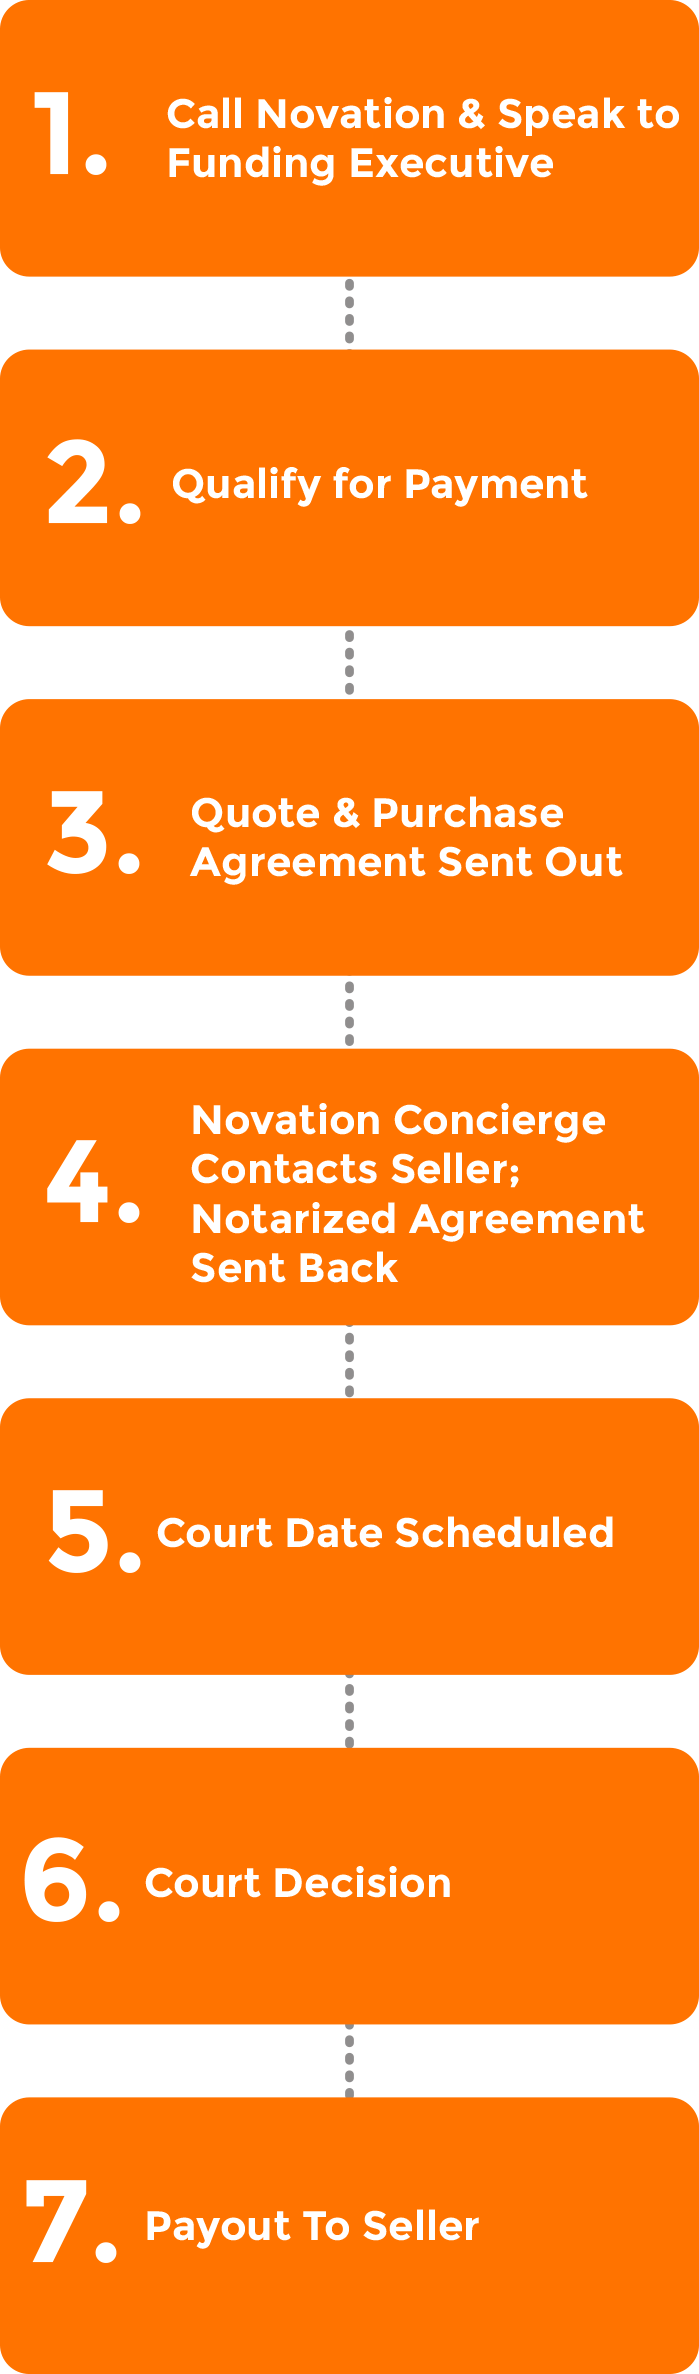 The Settlement Process